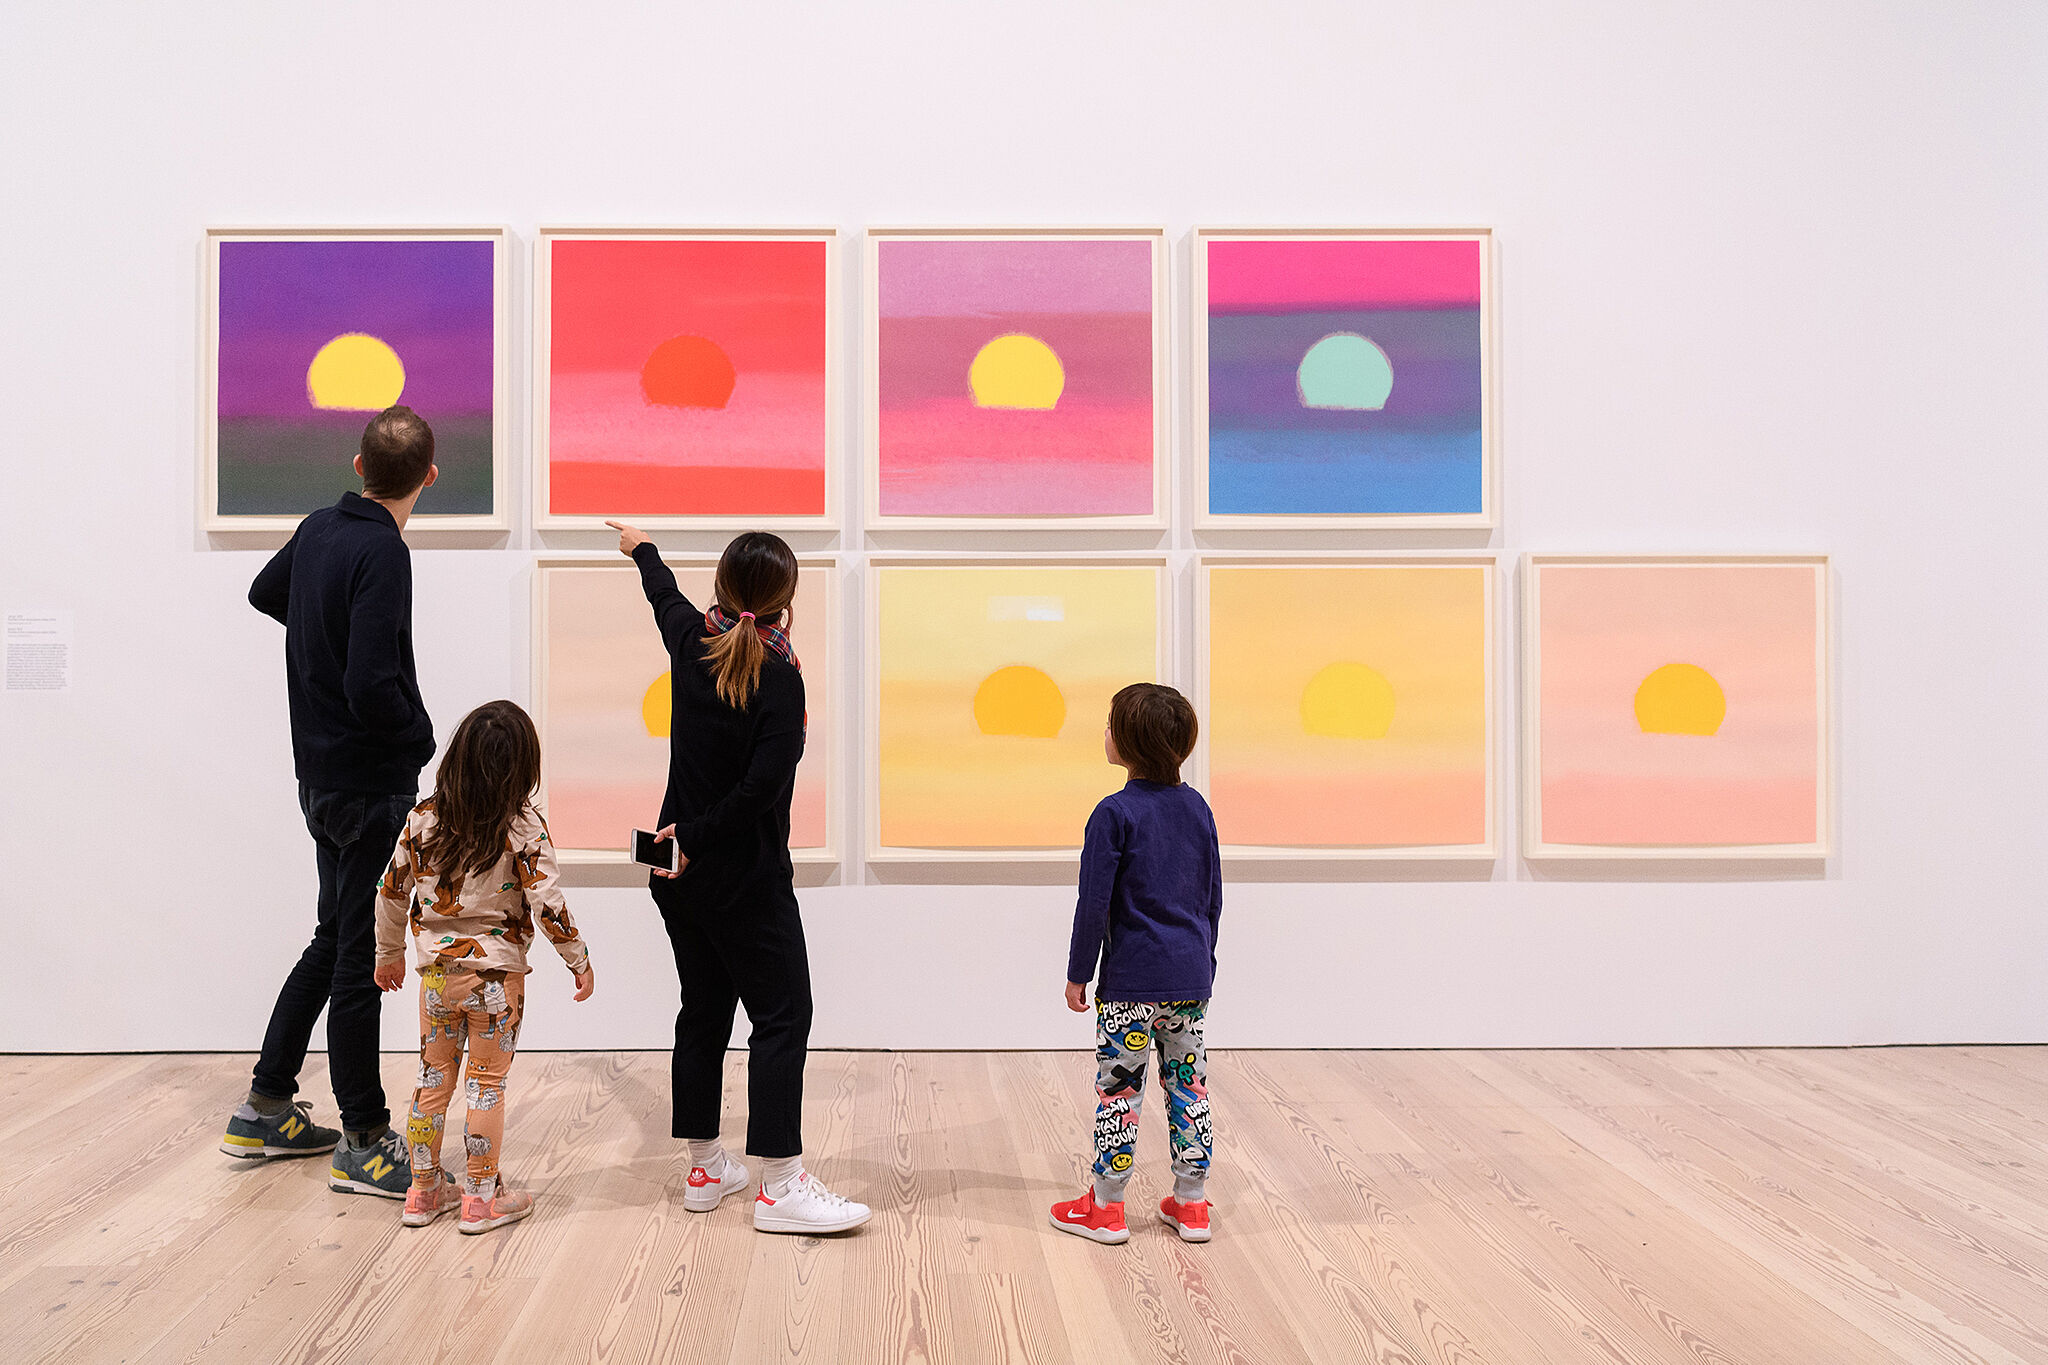 Families look at art together